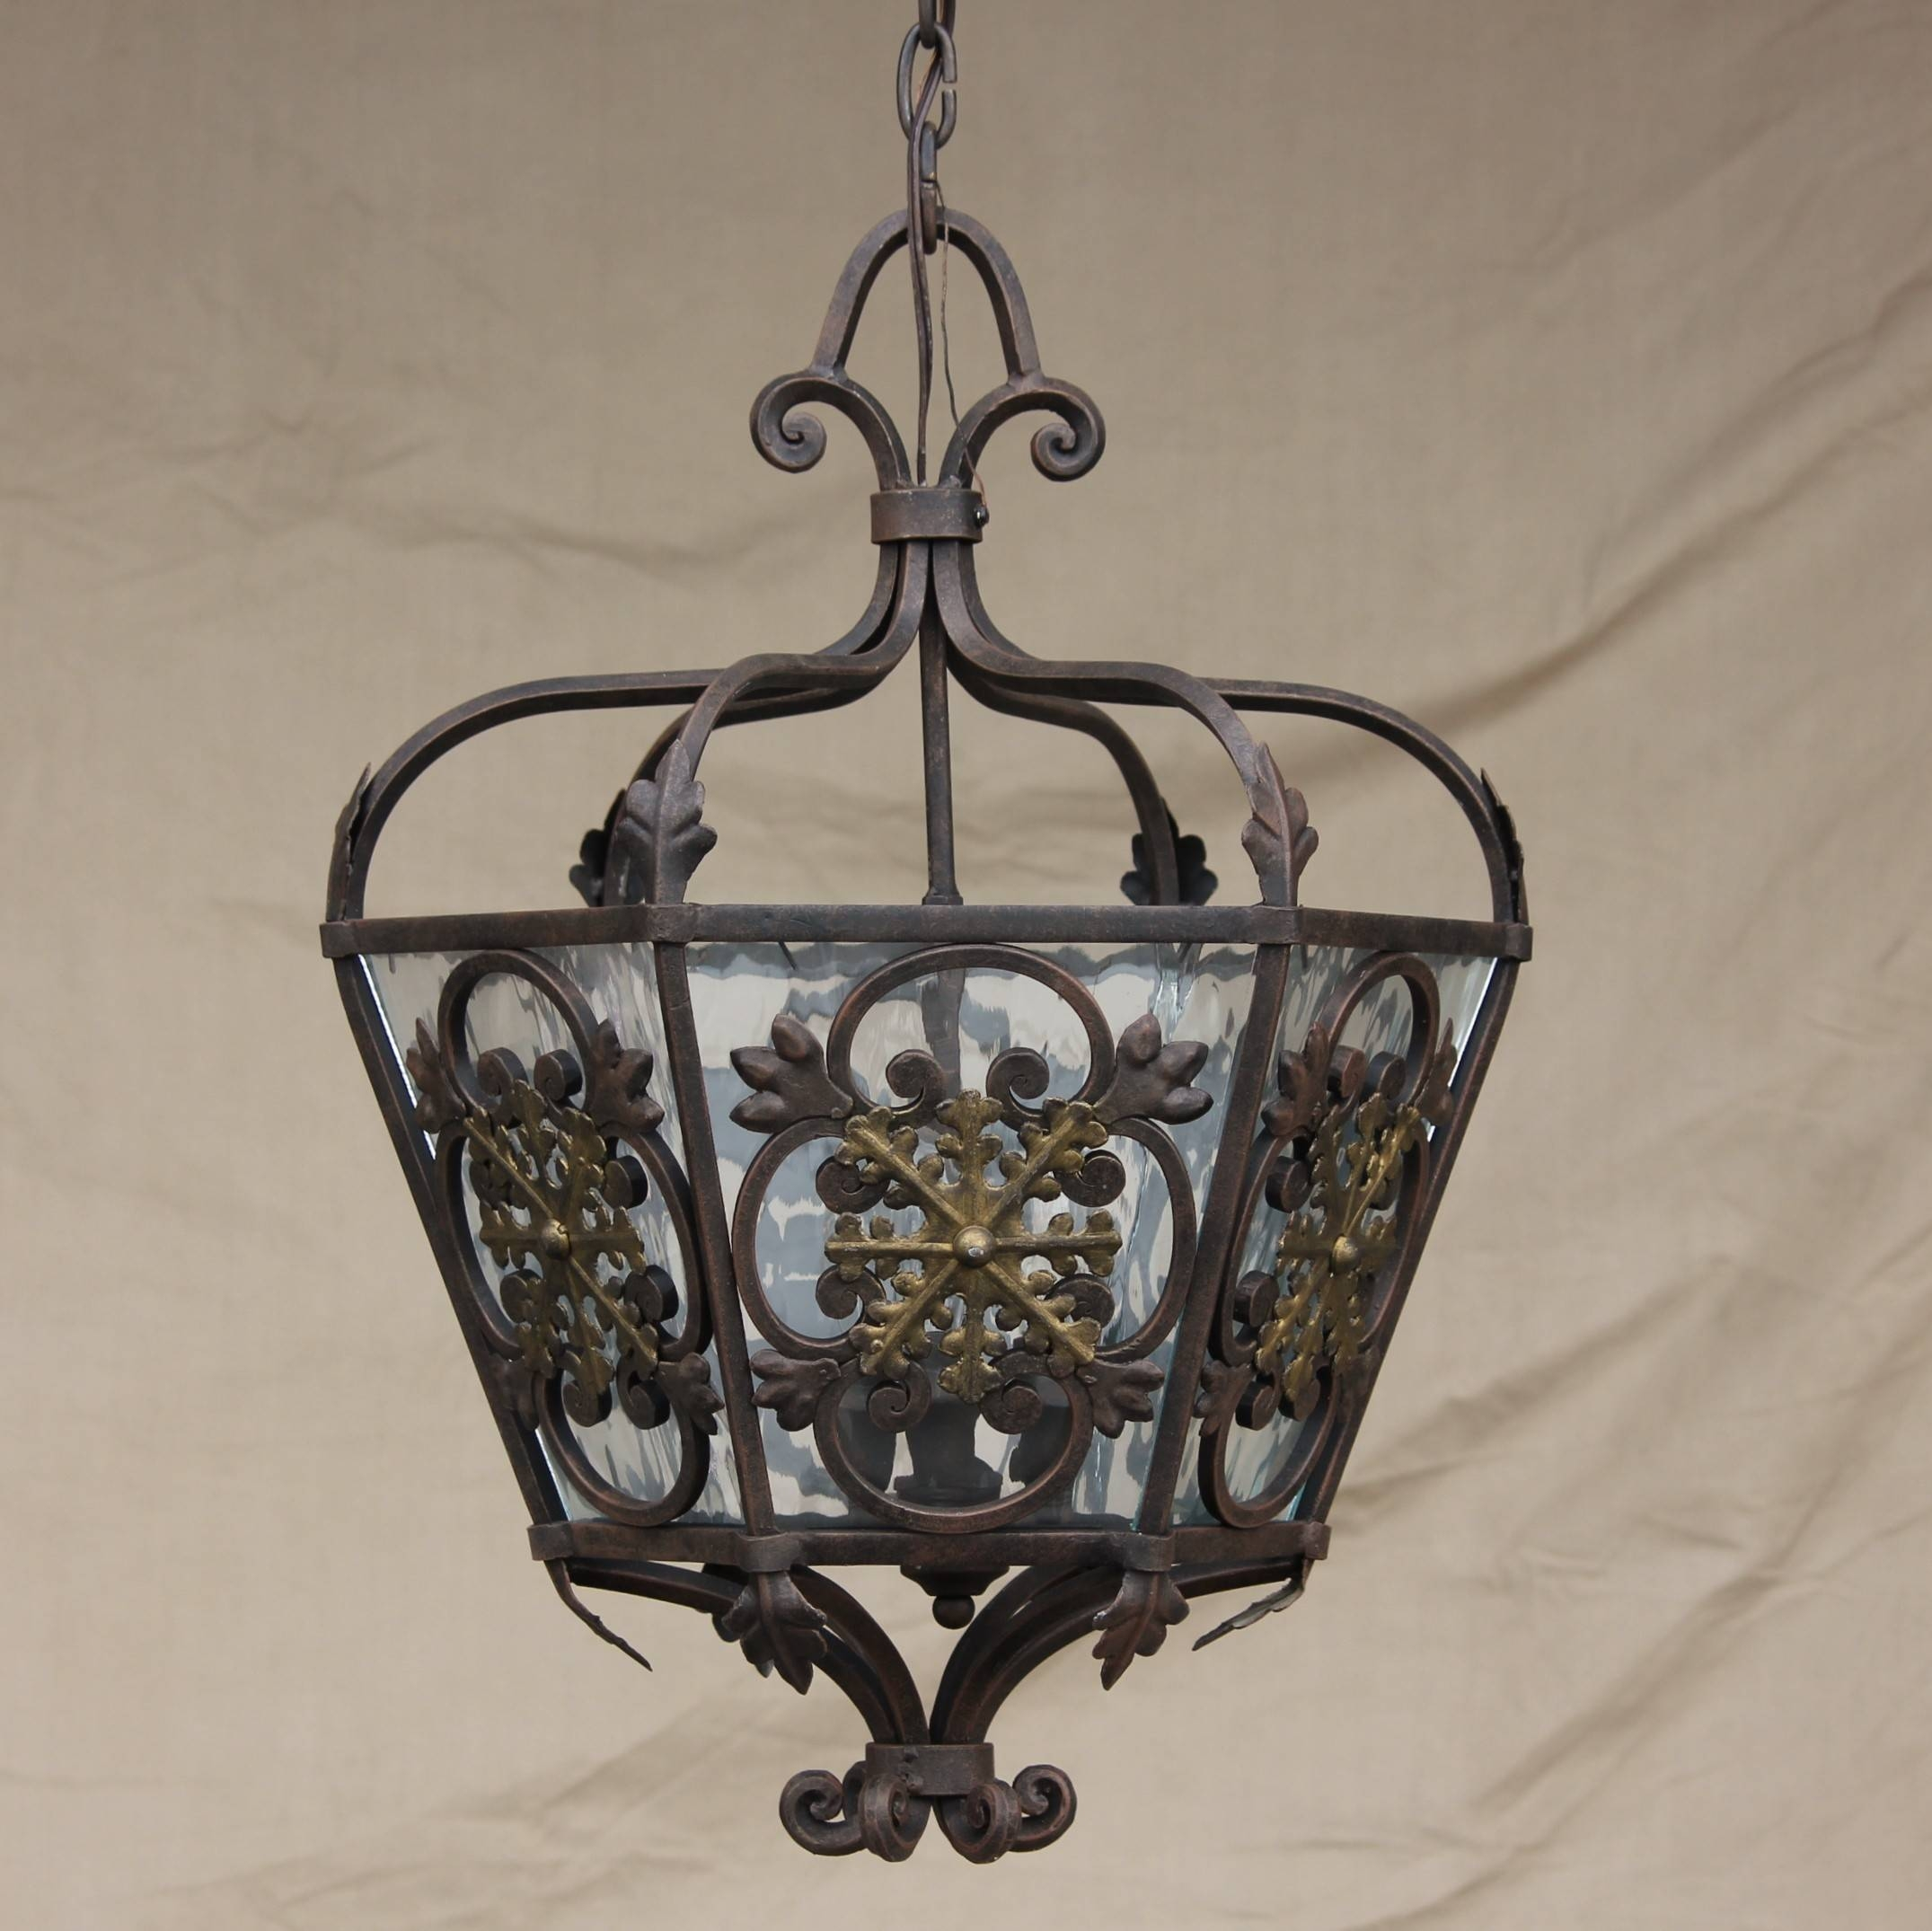 10 Options Of Wrought Iron Ceiling Lights | Warisan Lighting with Wrought Iron Lights Fittings (Image 2 of 15)